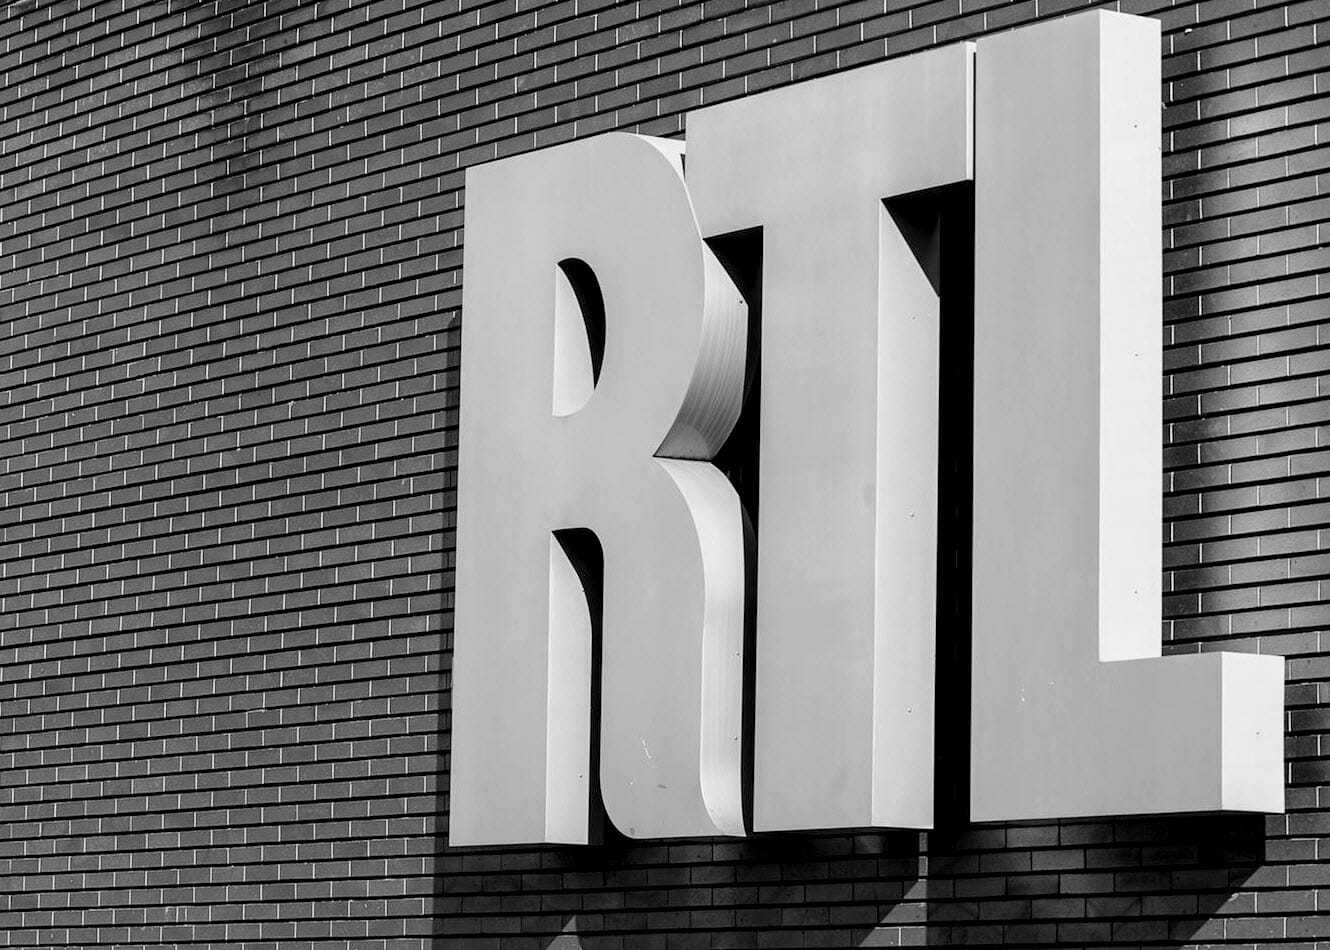 Comment avoir RTL TVI en France ?